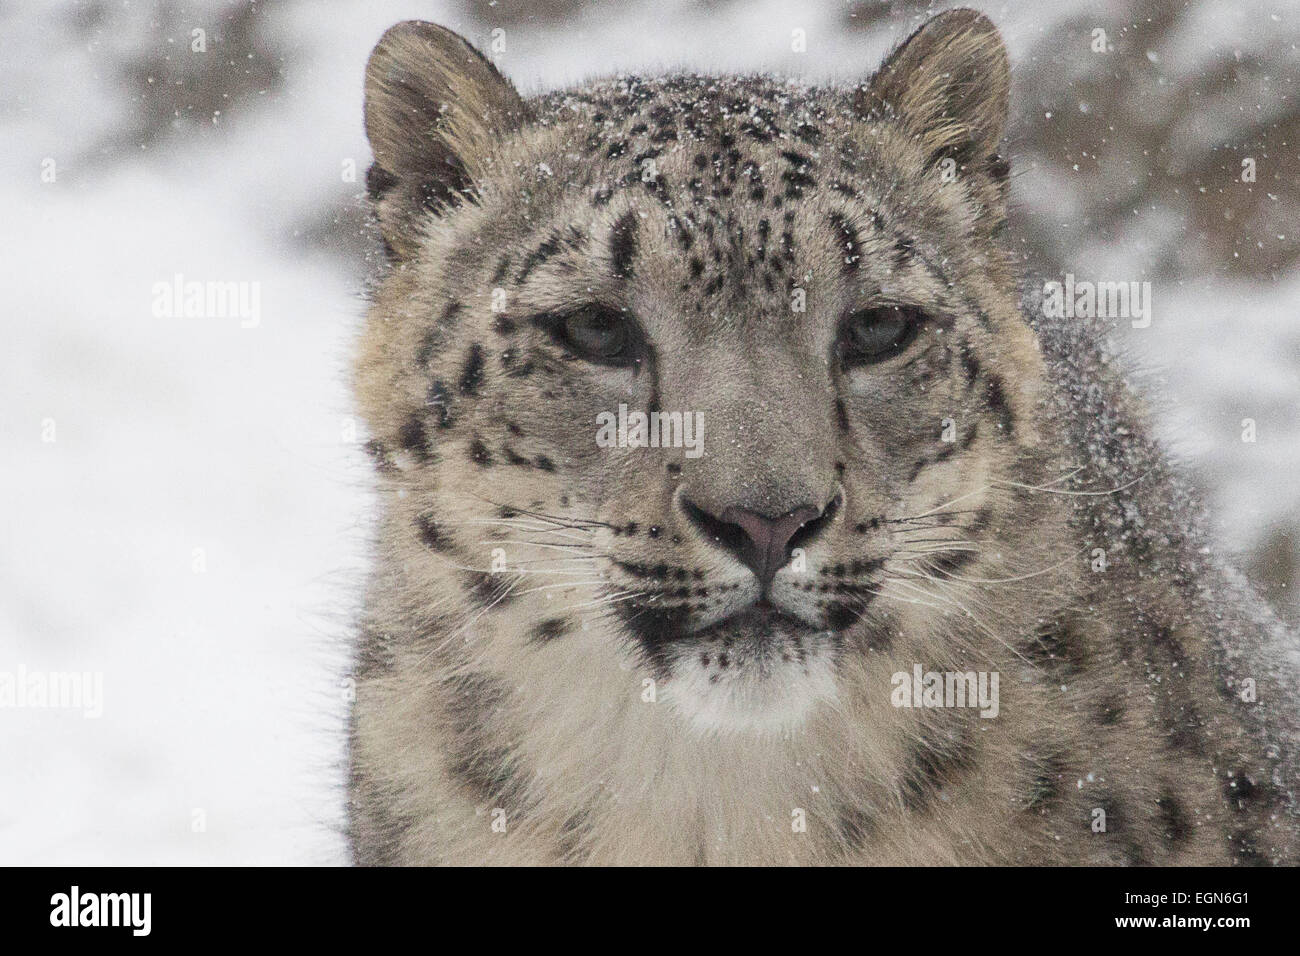 Snow Leopard- A snow leopard stares off in the distance at something beyond the photographer - Stock Image